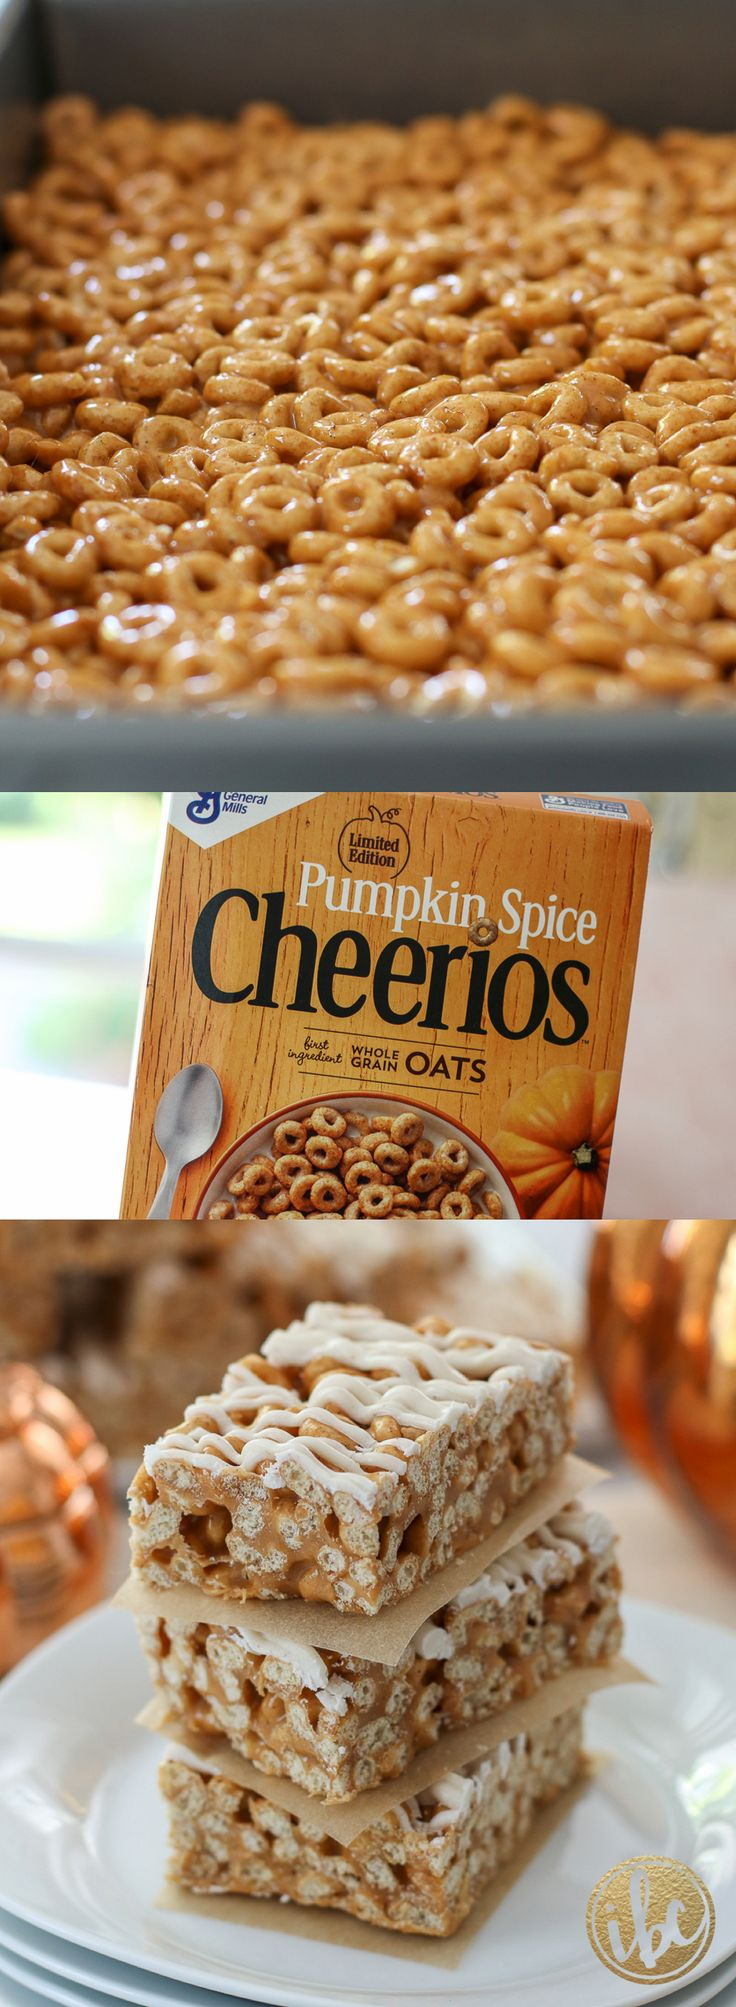 Pumpkin spice cheerios? Is this for real? Where has this been all my life? Lol